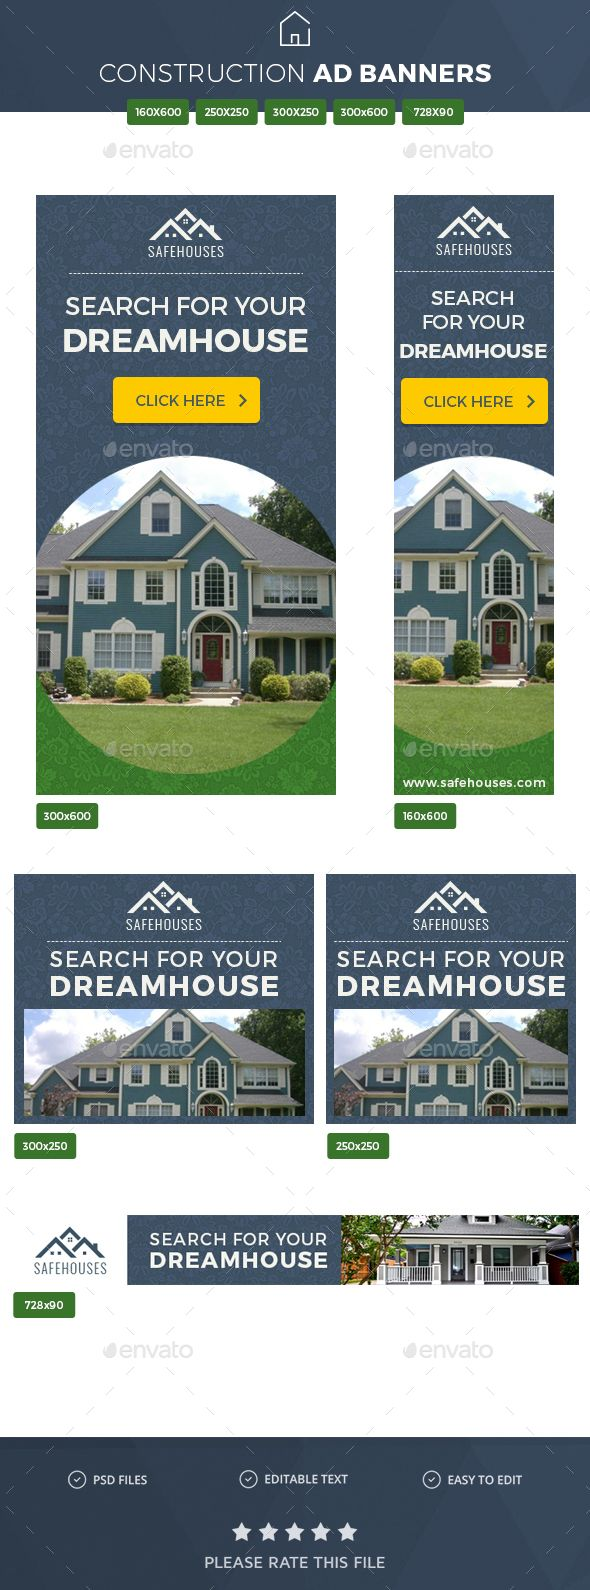 real estate ad banners